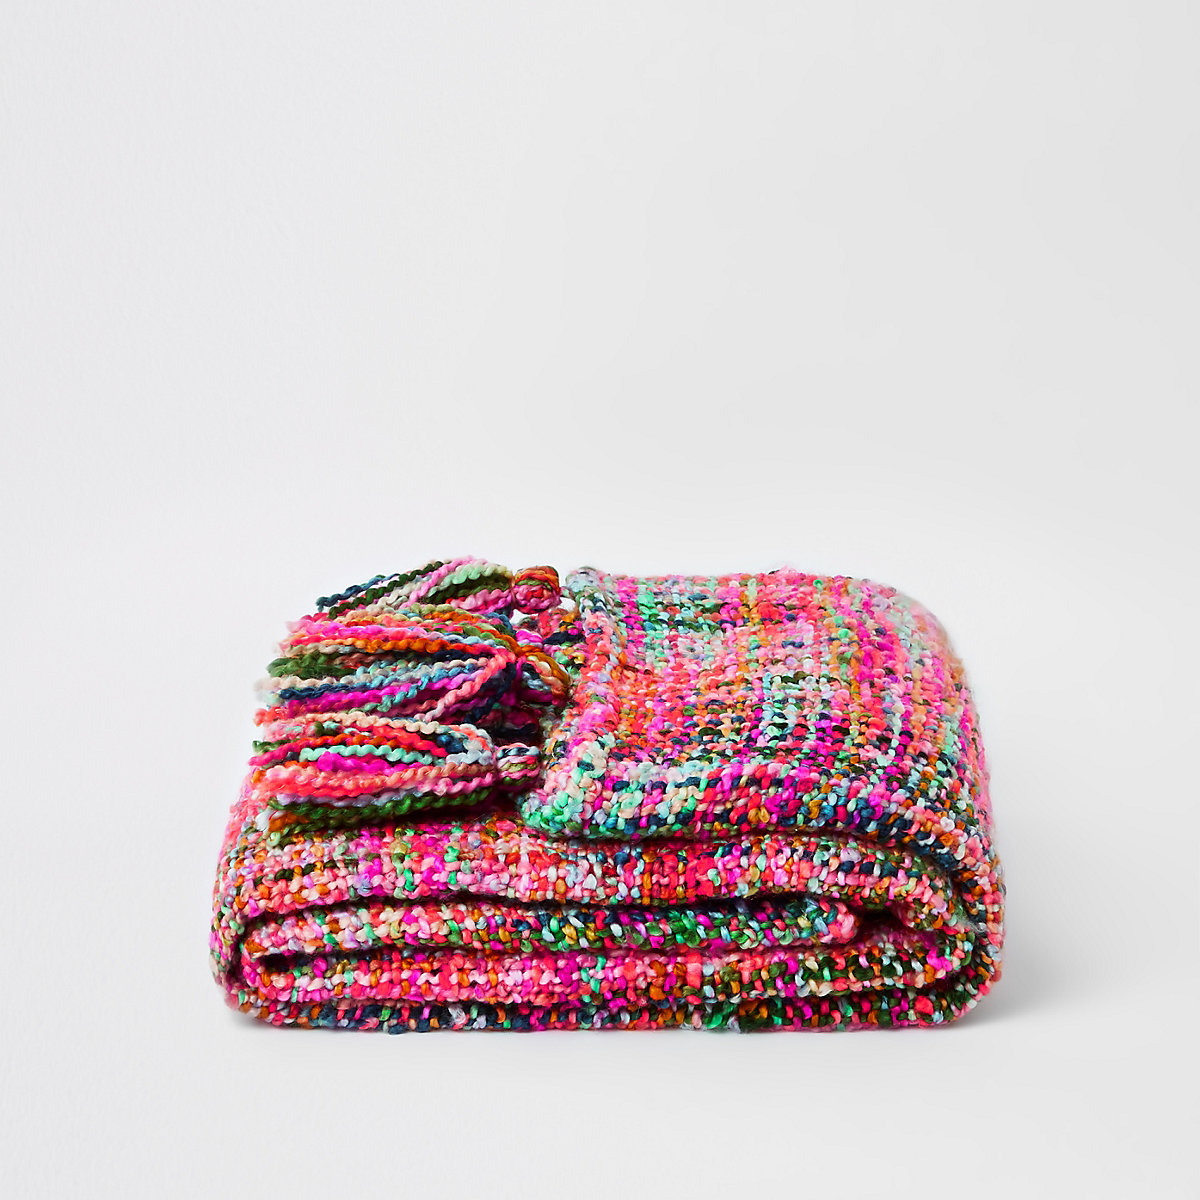 Multicolour knit throw with tassels